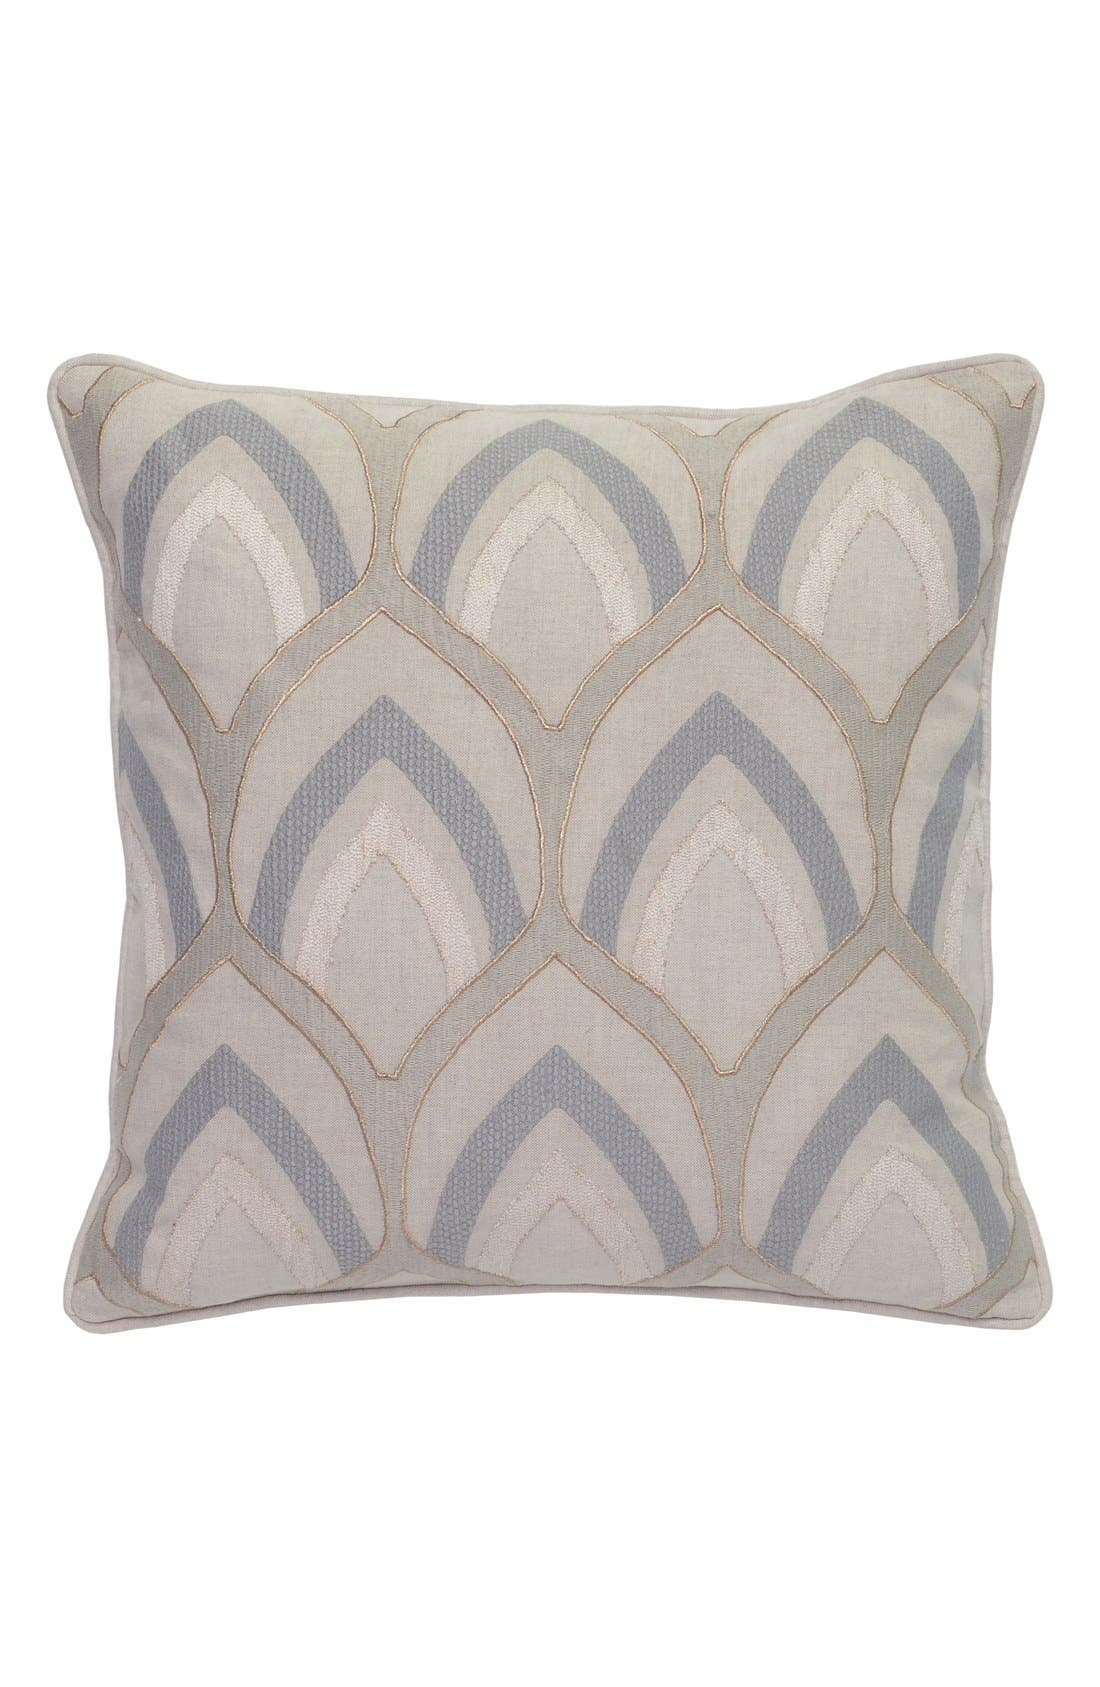 'Hollis' Decorative Pillow,                             Main thumbnail 1, color,